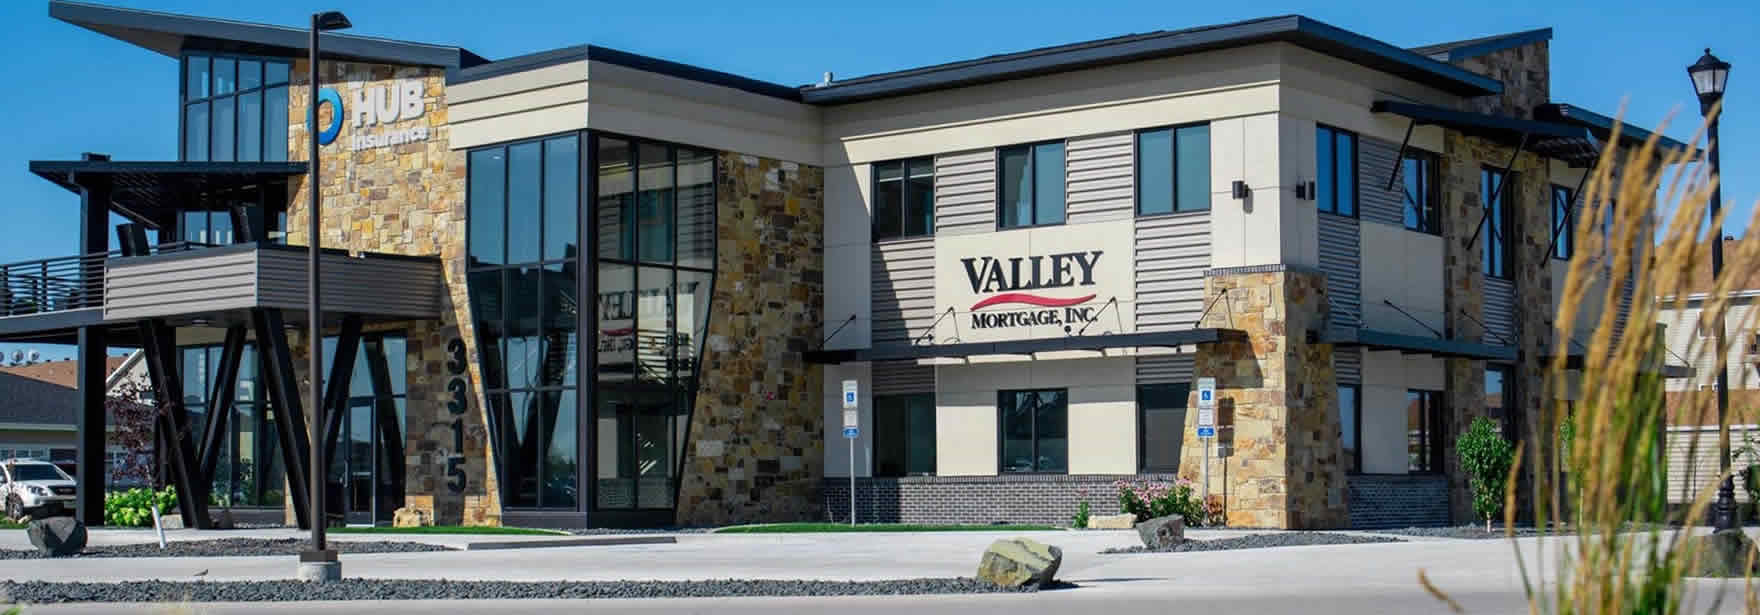 Valley Mortgage Inc. provides mortgage services in the Fargo-Moorhead, and surrounding communities.